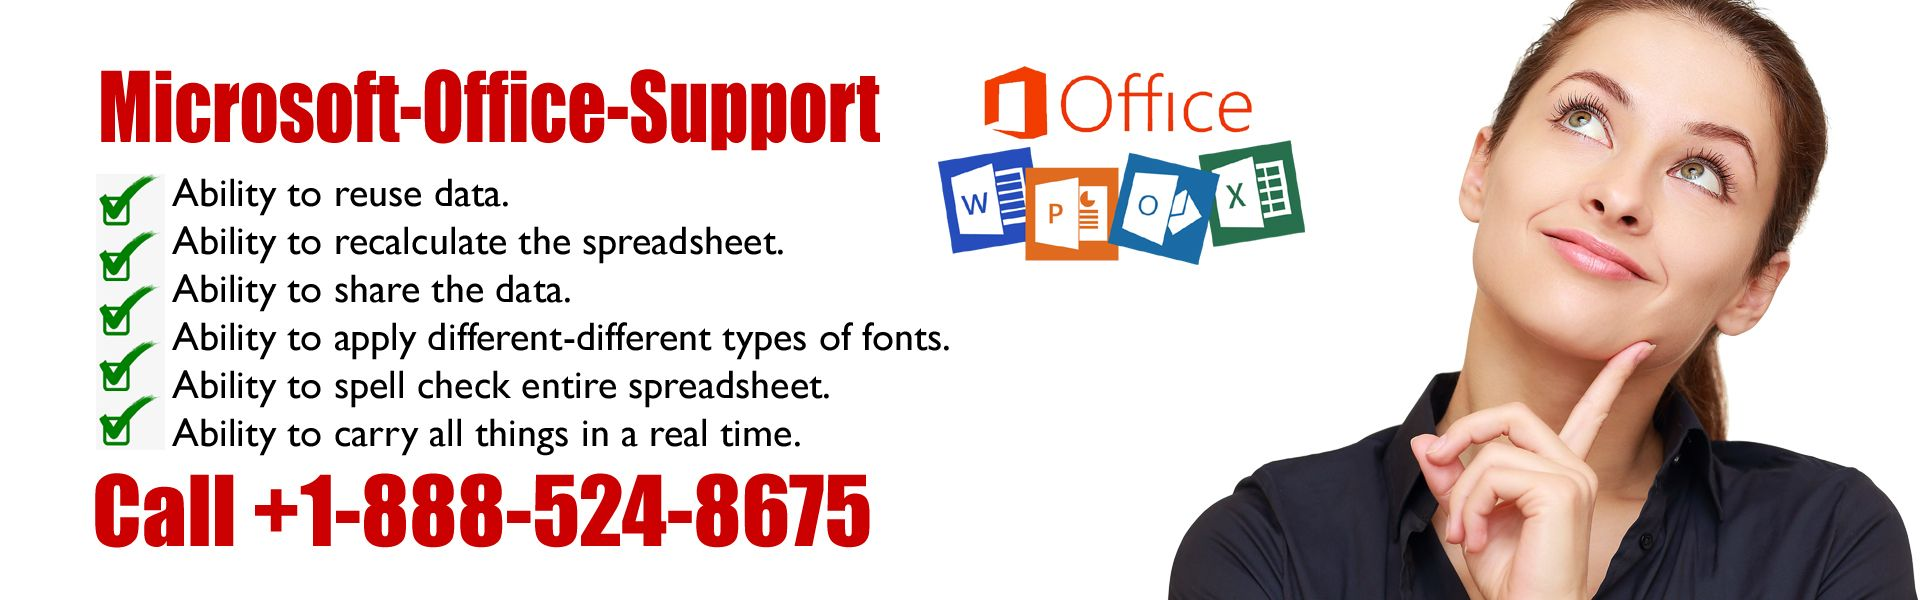 Pin by Lussy Smith on Google + MS Office Support | Microsoft